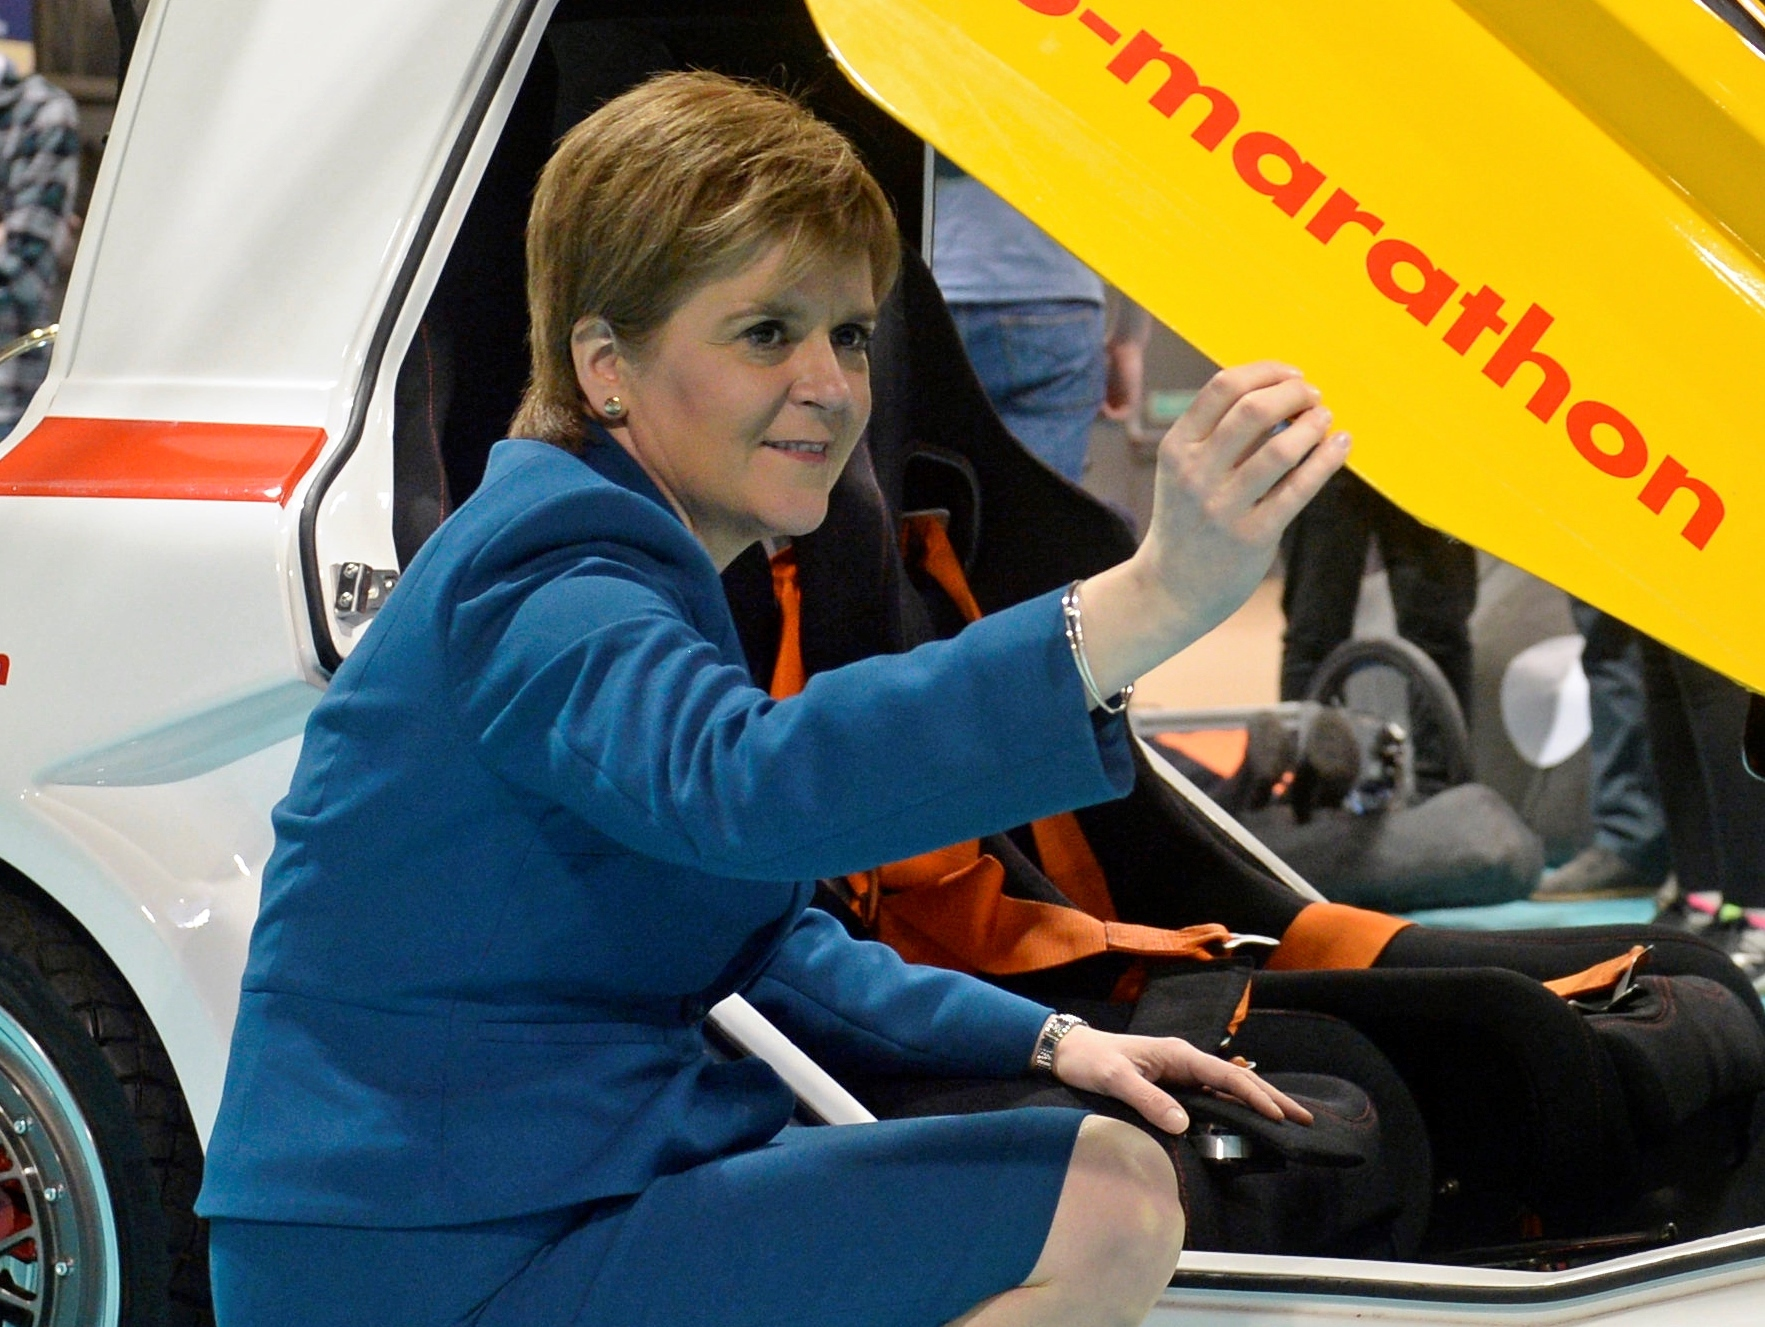 Scotland's First Minister Nicola Sturgeon with Miss K an urban concept car at the All Energy Exhibition Conference at the Scottish Event Campus in Glasgow.  May 2 2018.